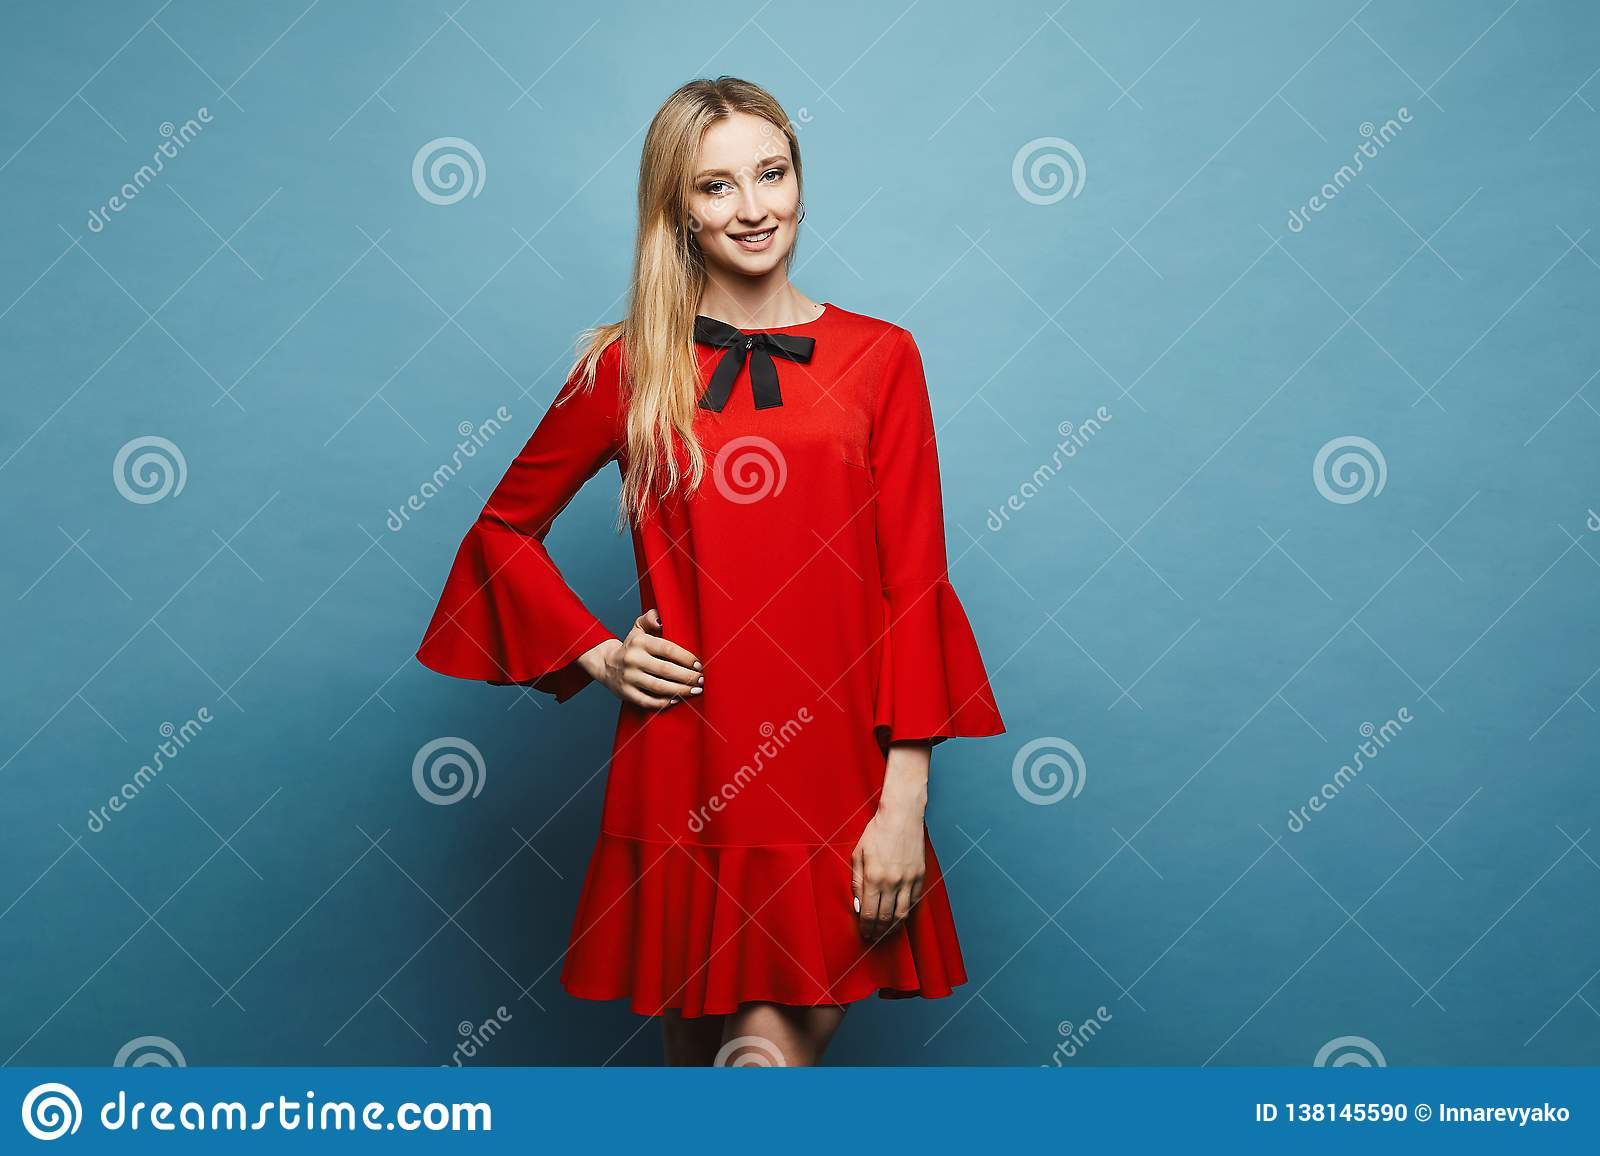 Beautiful and fashionable blonde model girl with perfect slim body in a stylish short red dress with black bow posing at